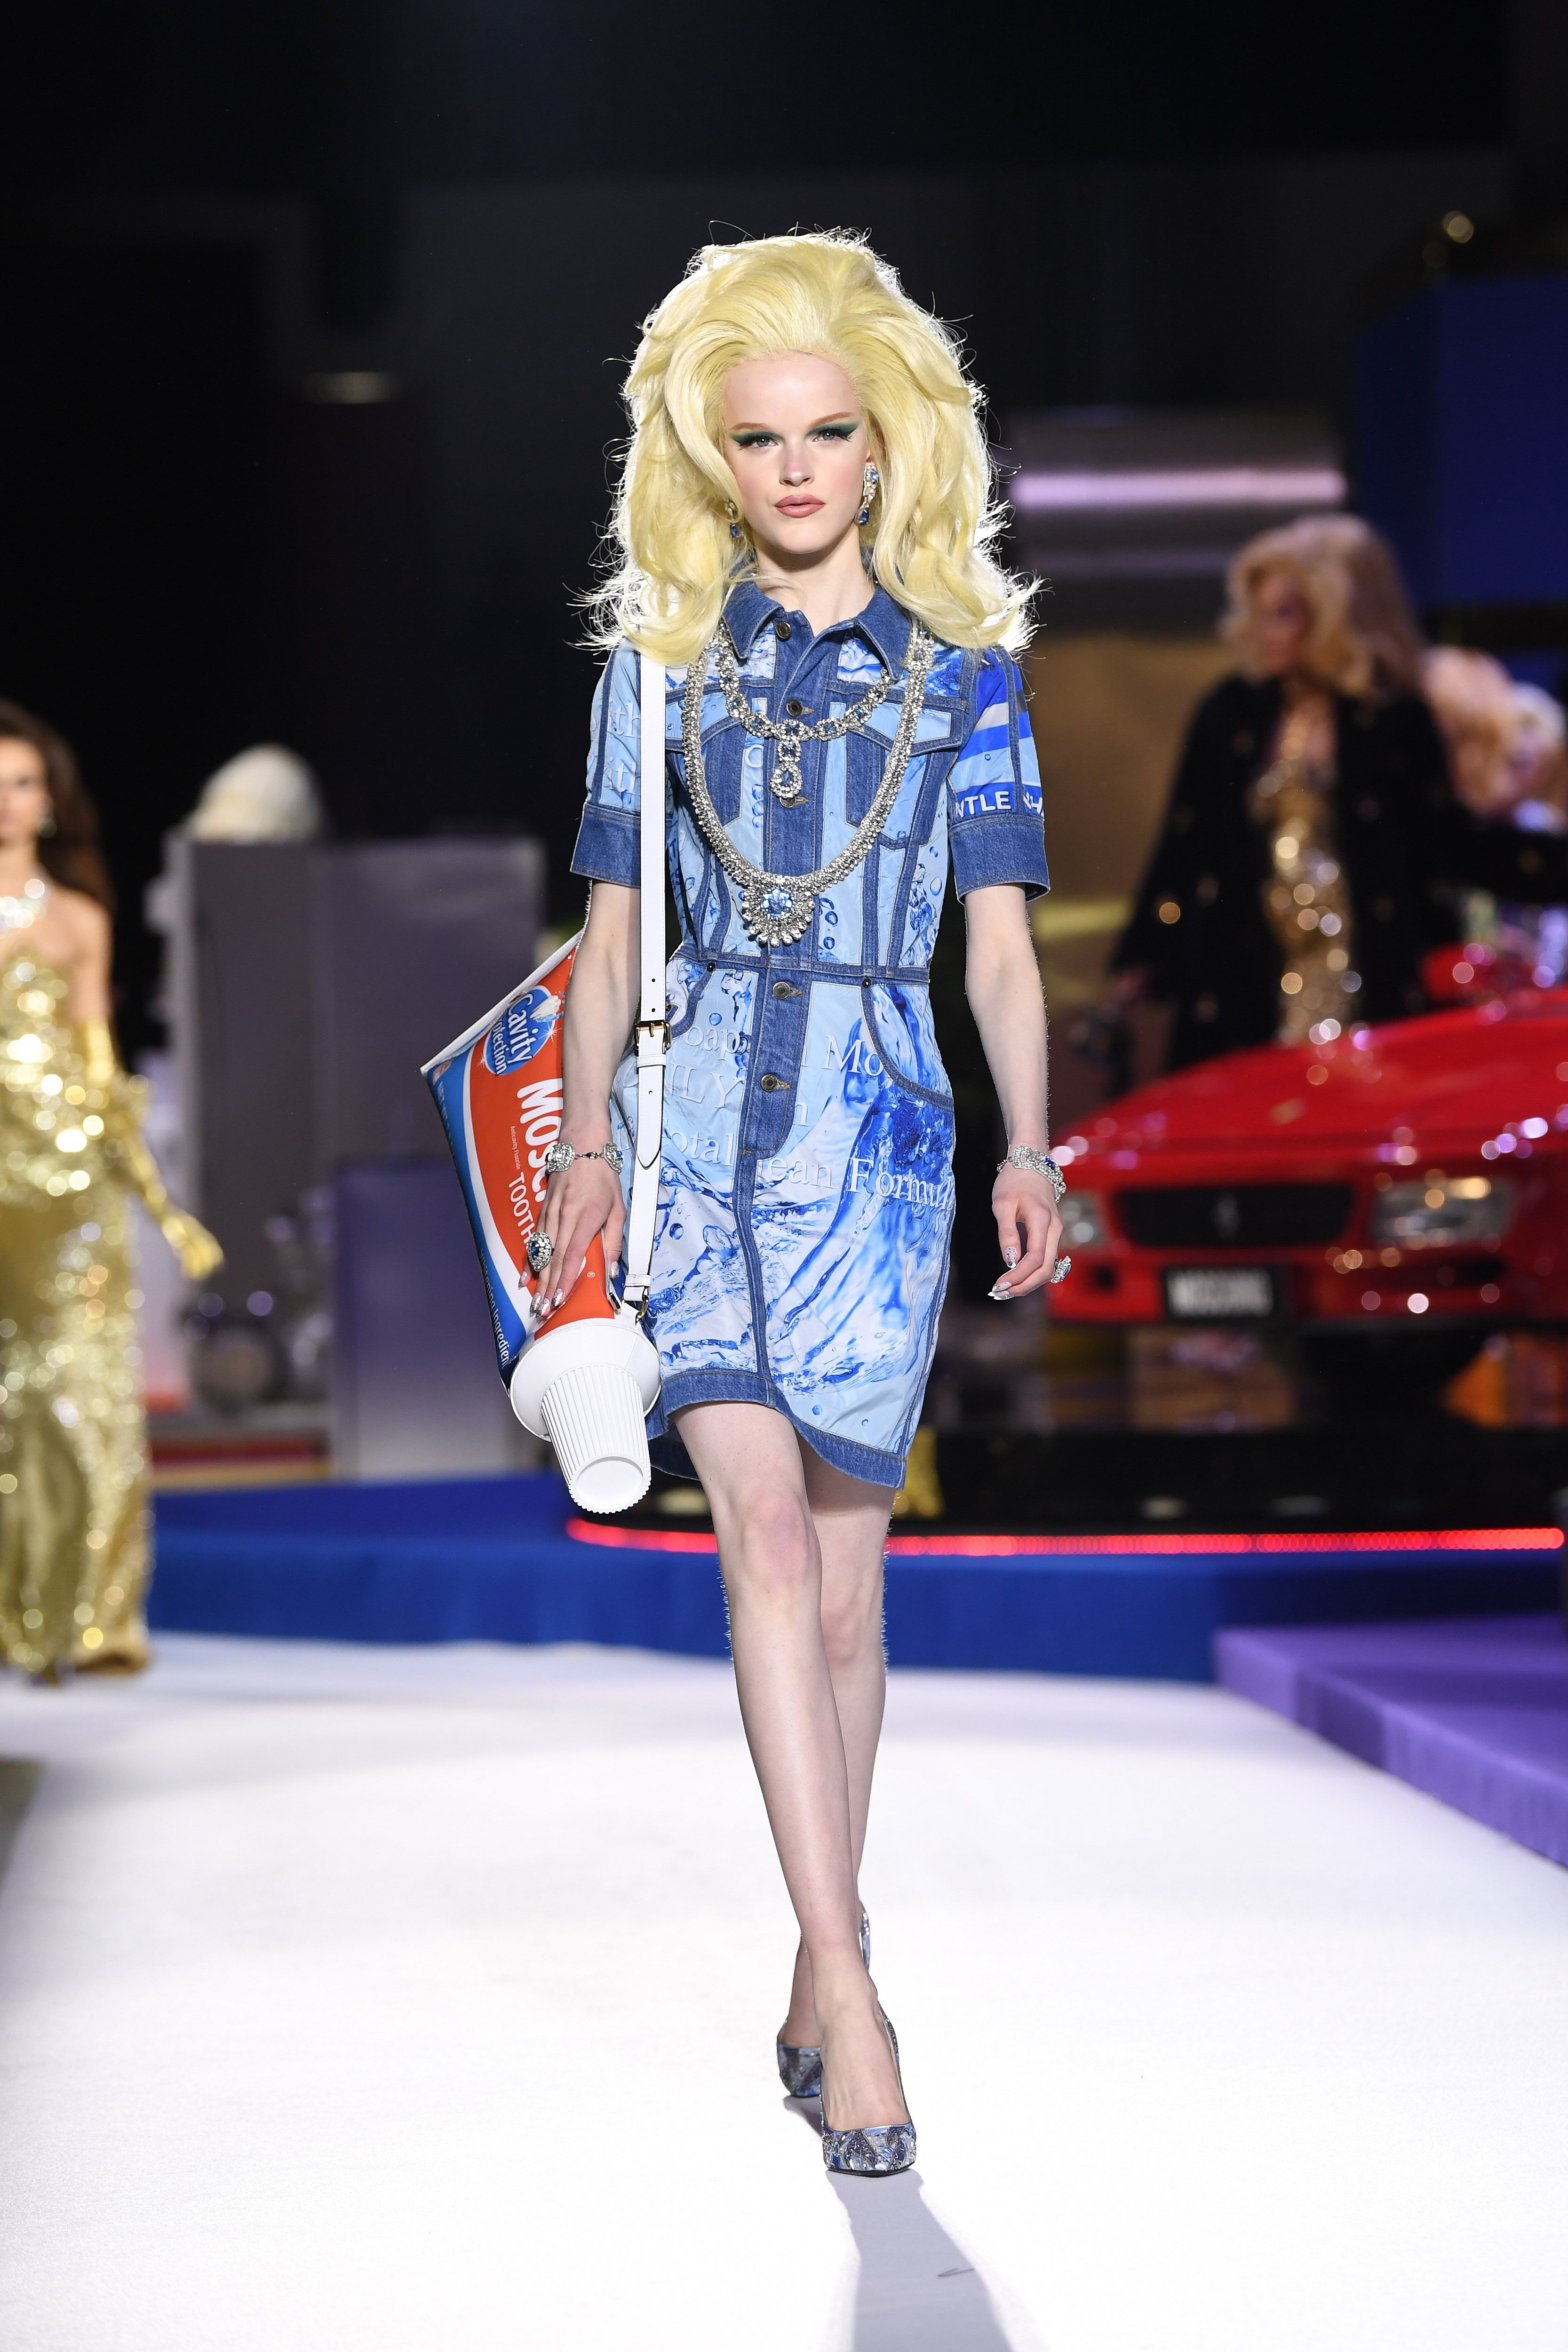 bb7db603653 Moschino's The Price Is Right-Inspired Runway Show Featured Toothpaste  Purses